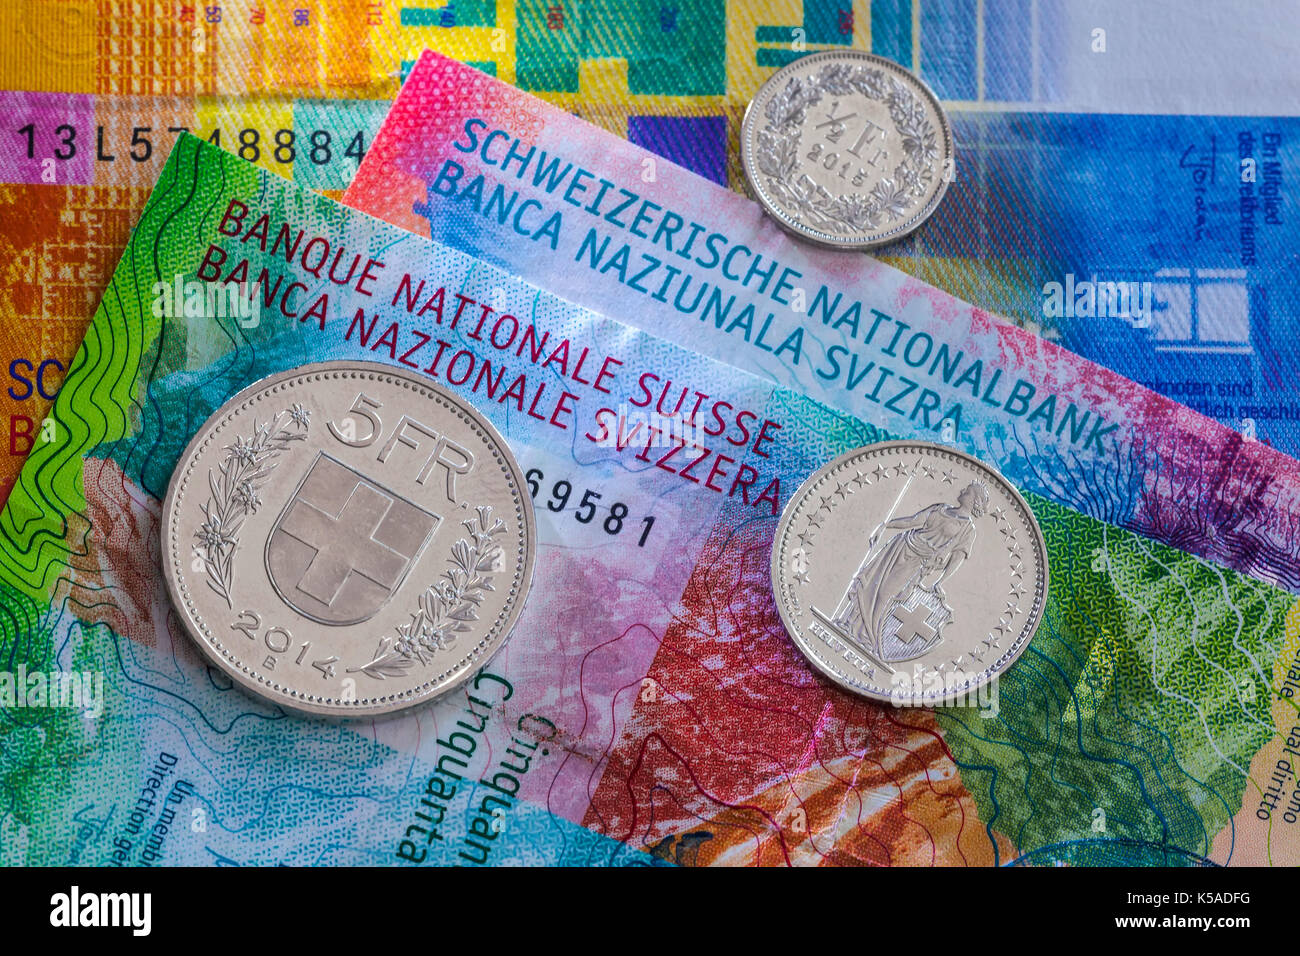 Bern, Switzerland:   Money of Switzerland. New 20- and 50-franc notes, which were introduced in 2017. - Stock Image